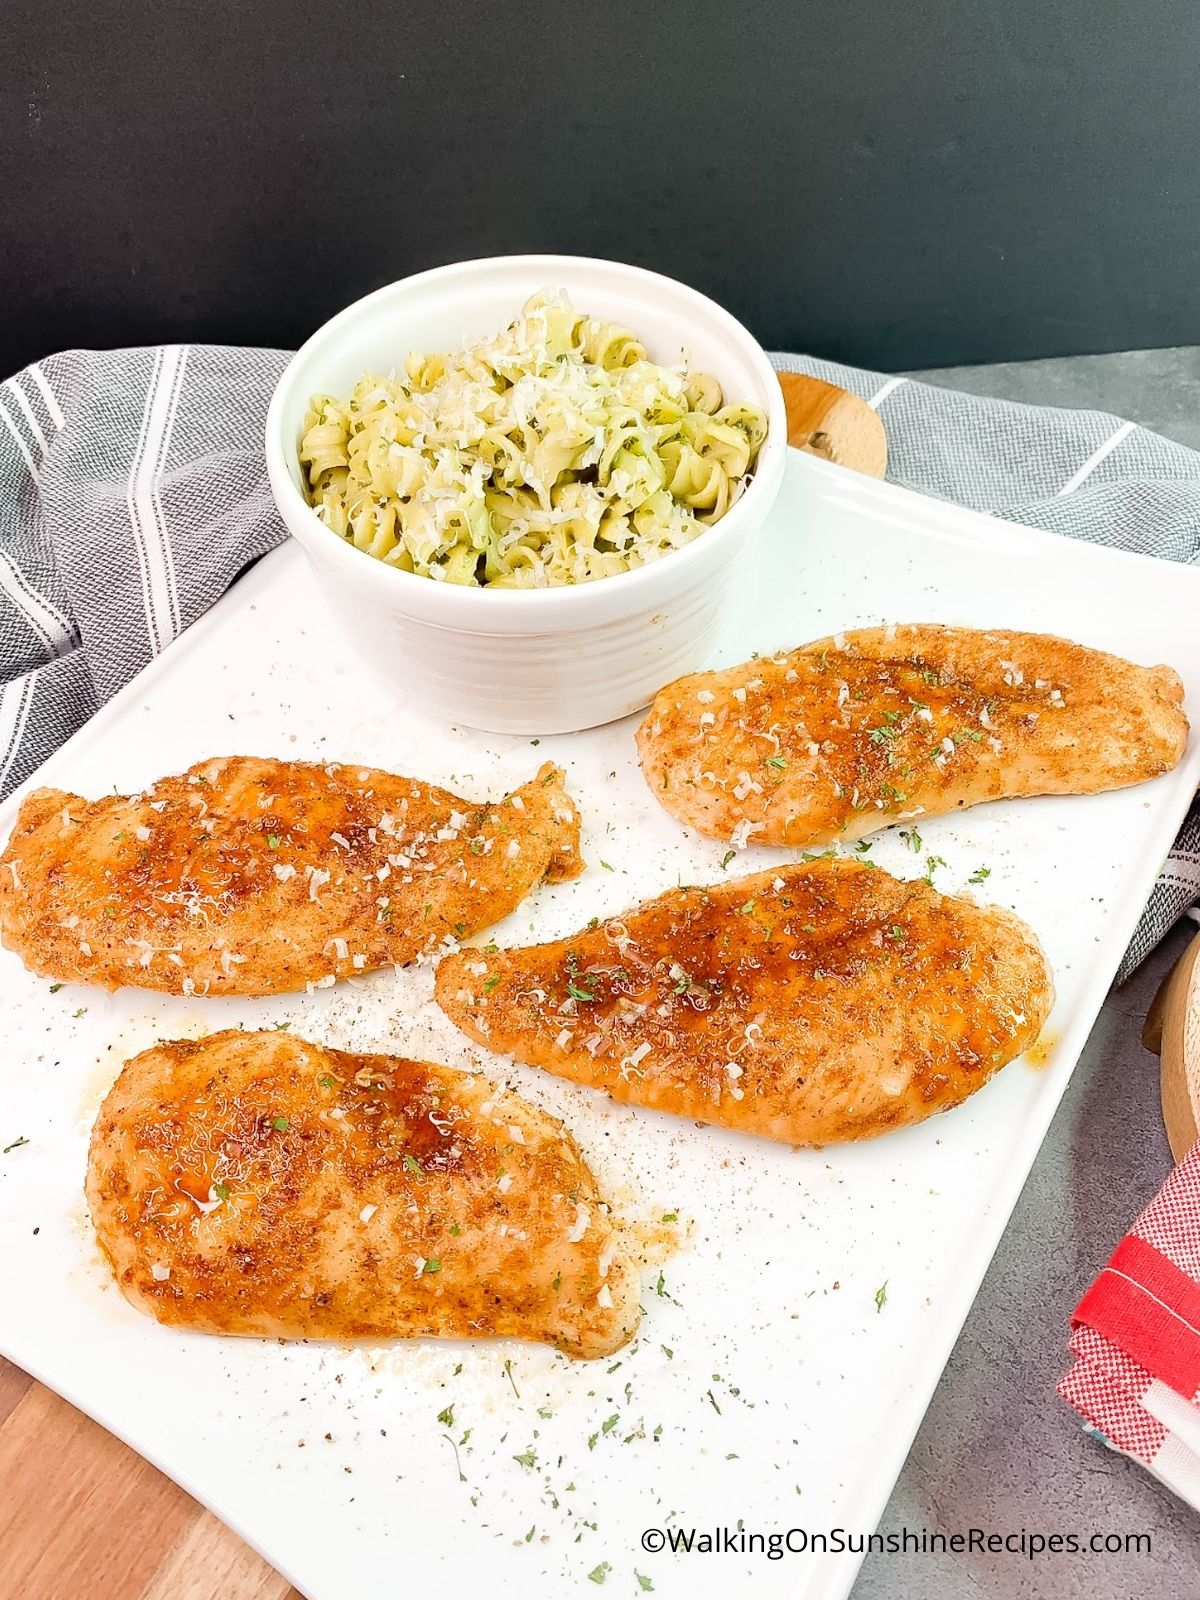 Baked Moist Chicken Cutlets on white platter with pasta in small bowl.